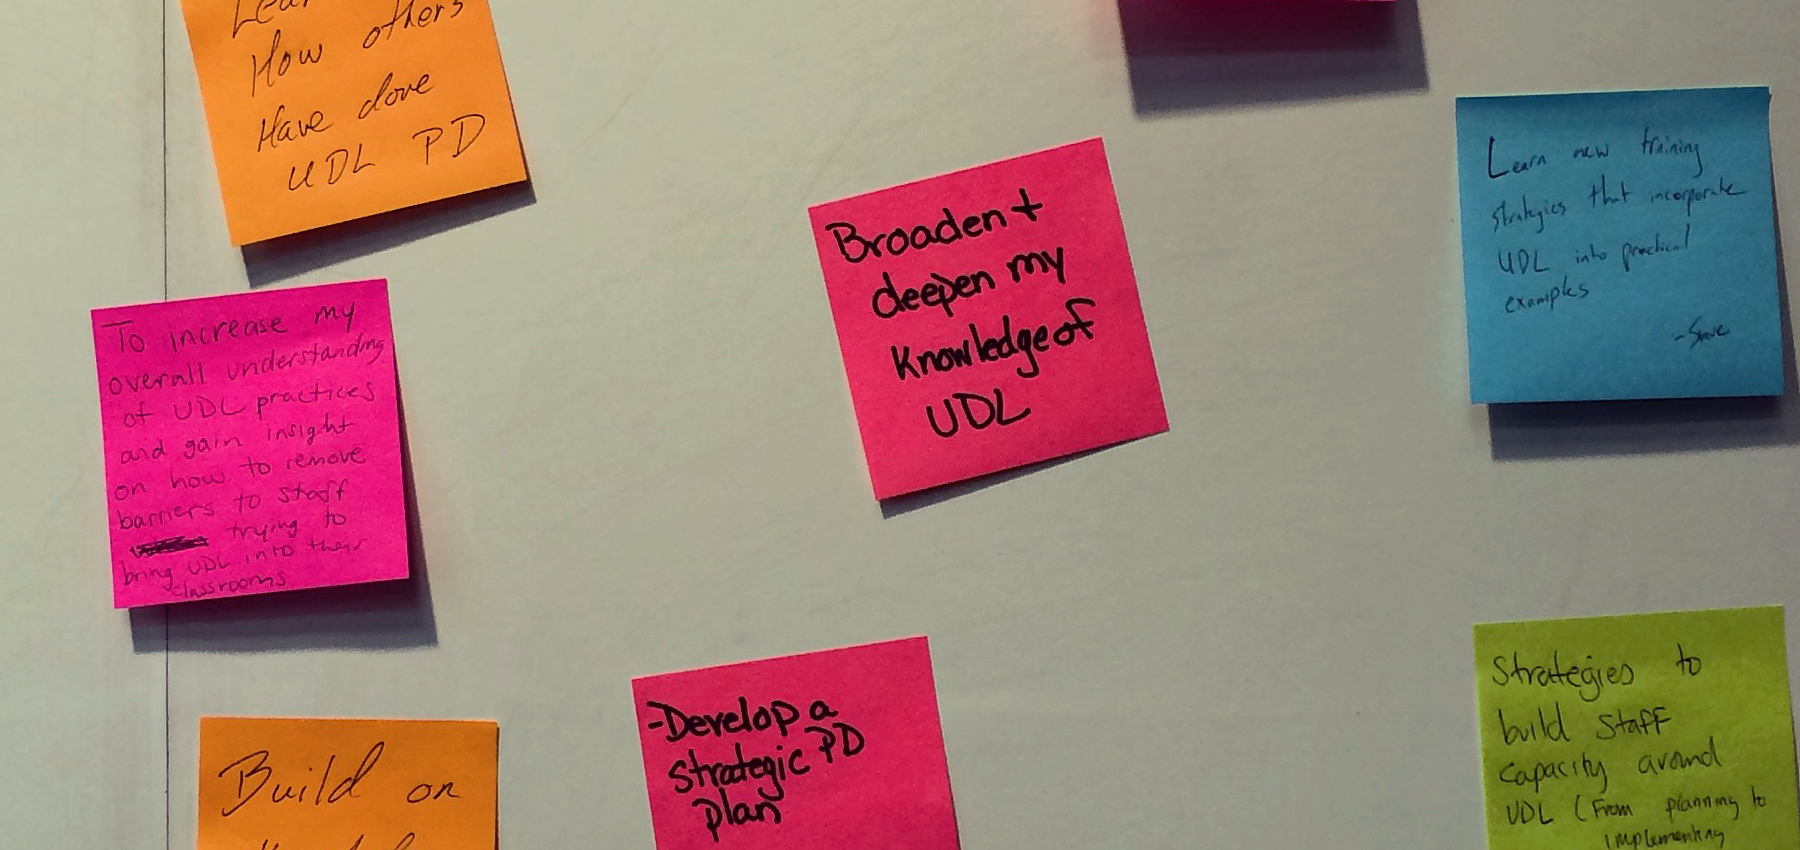 Colorful post-its showing UDL goals